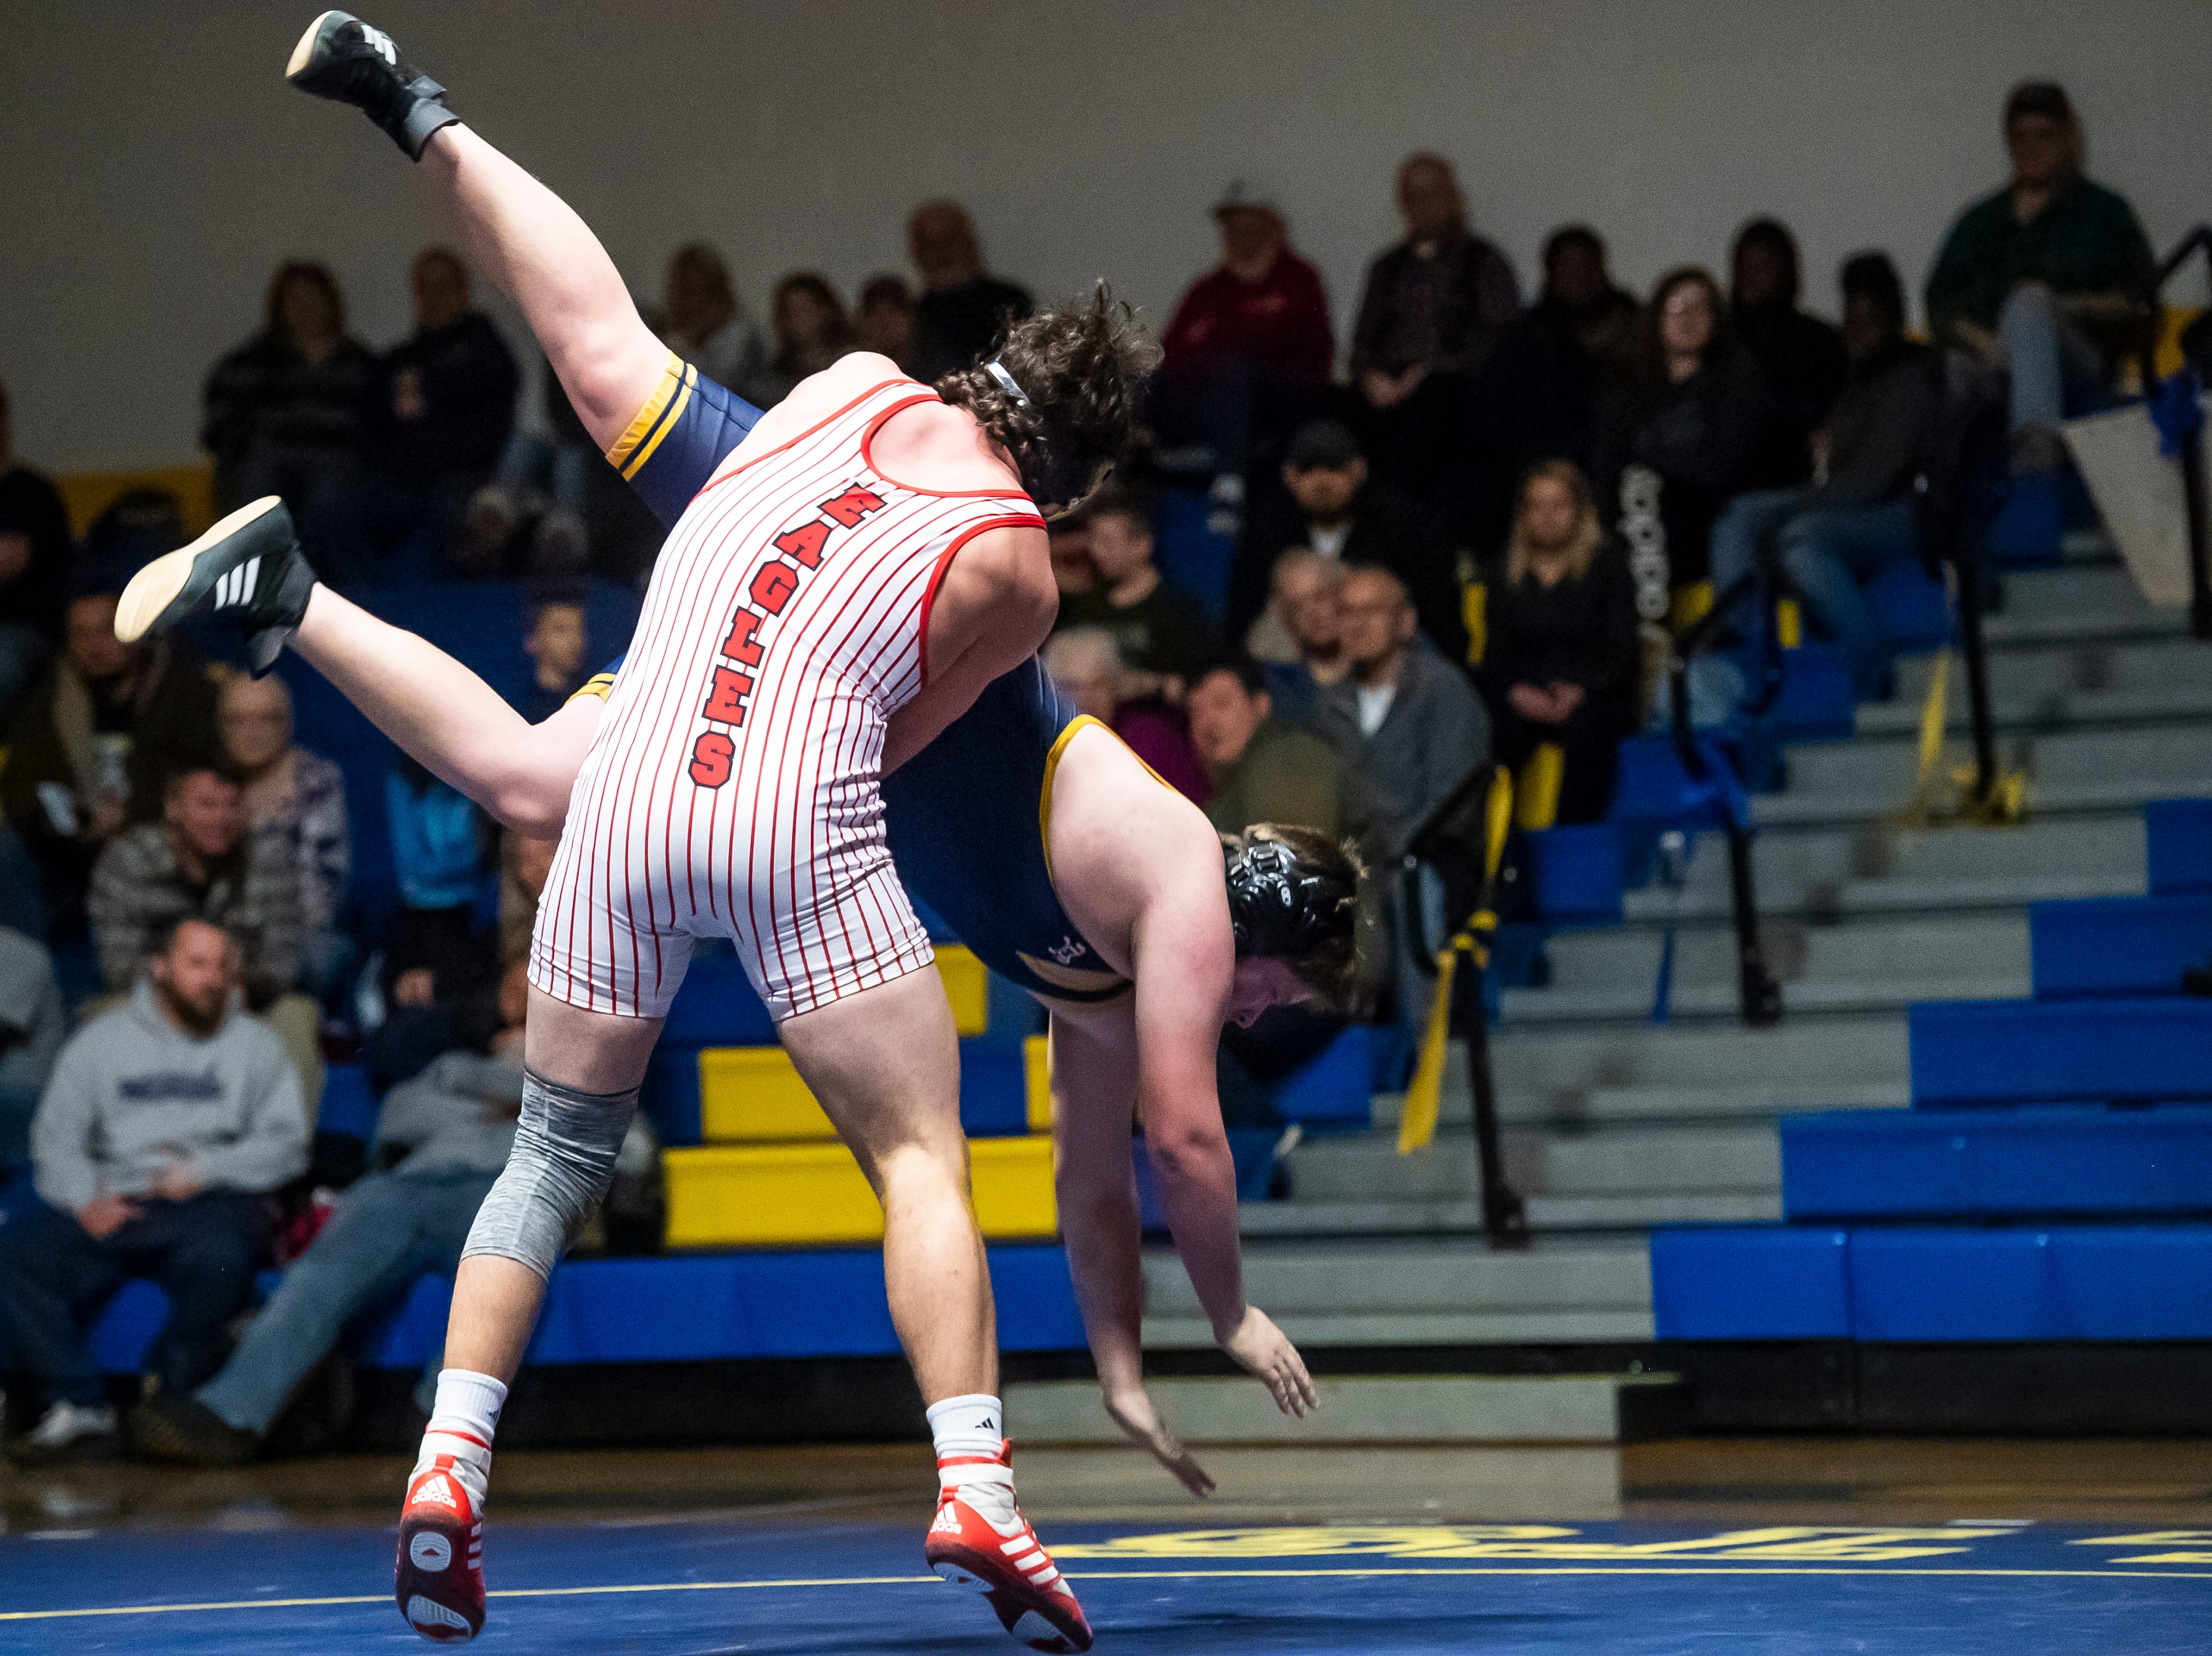 Bermudian Springs' Chase Dull throws down Littlestown's Jeremy Gebhart in the 220-pound bout on Thursday, January 24, 2019. Dull won by fall as the Eagles captured their 10th straight YAIAA Division III title with a 62-12 win.